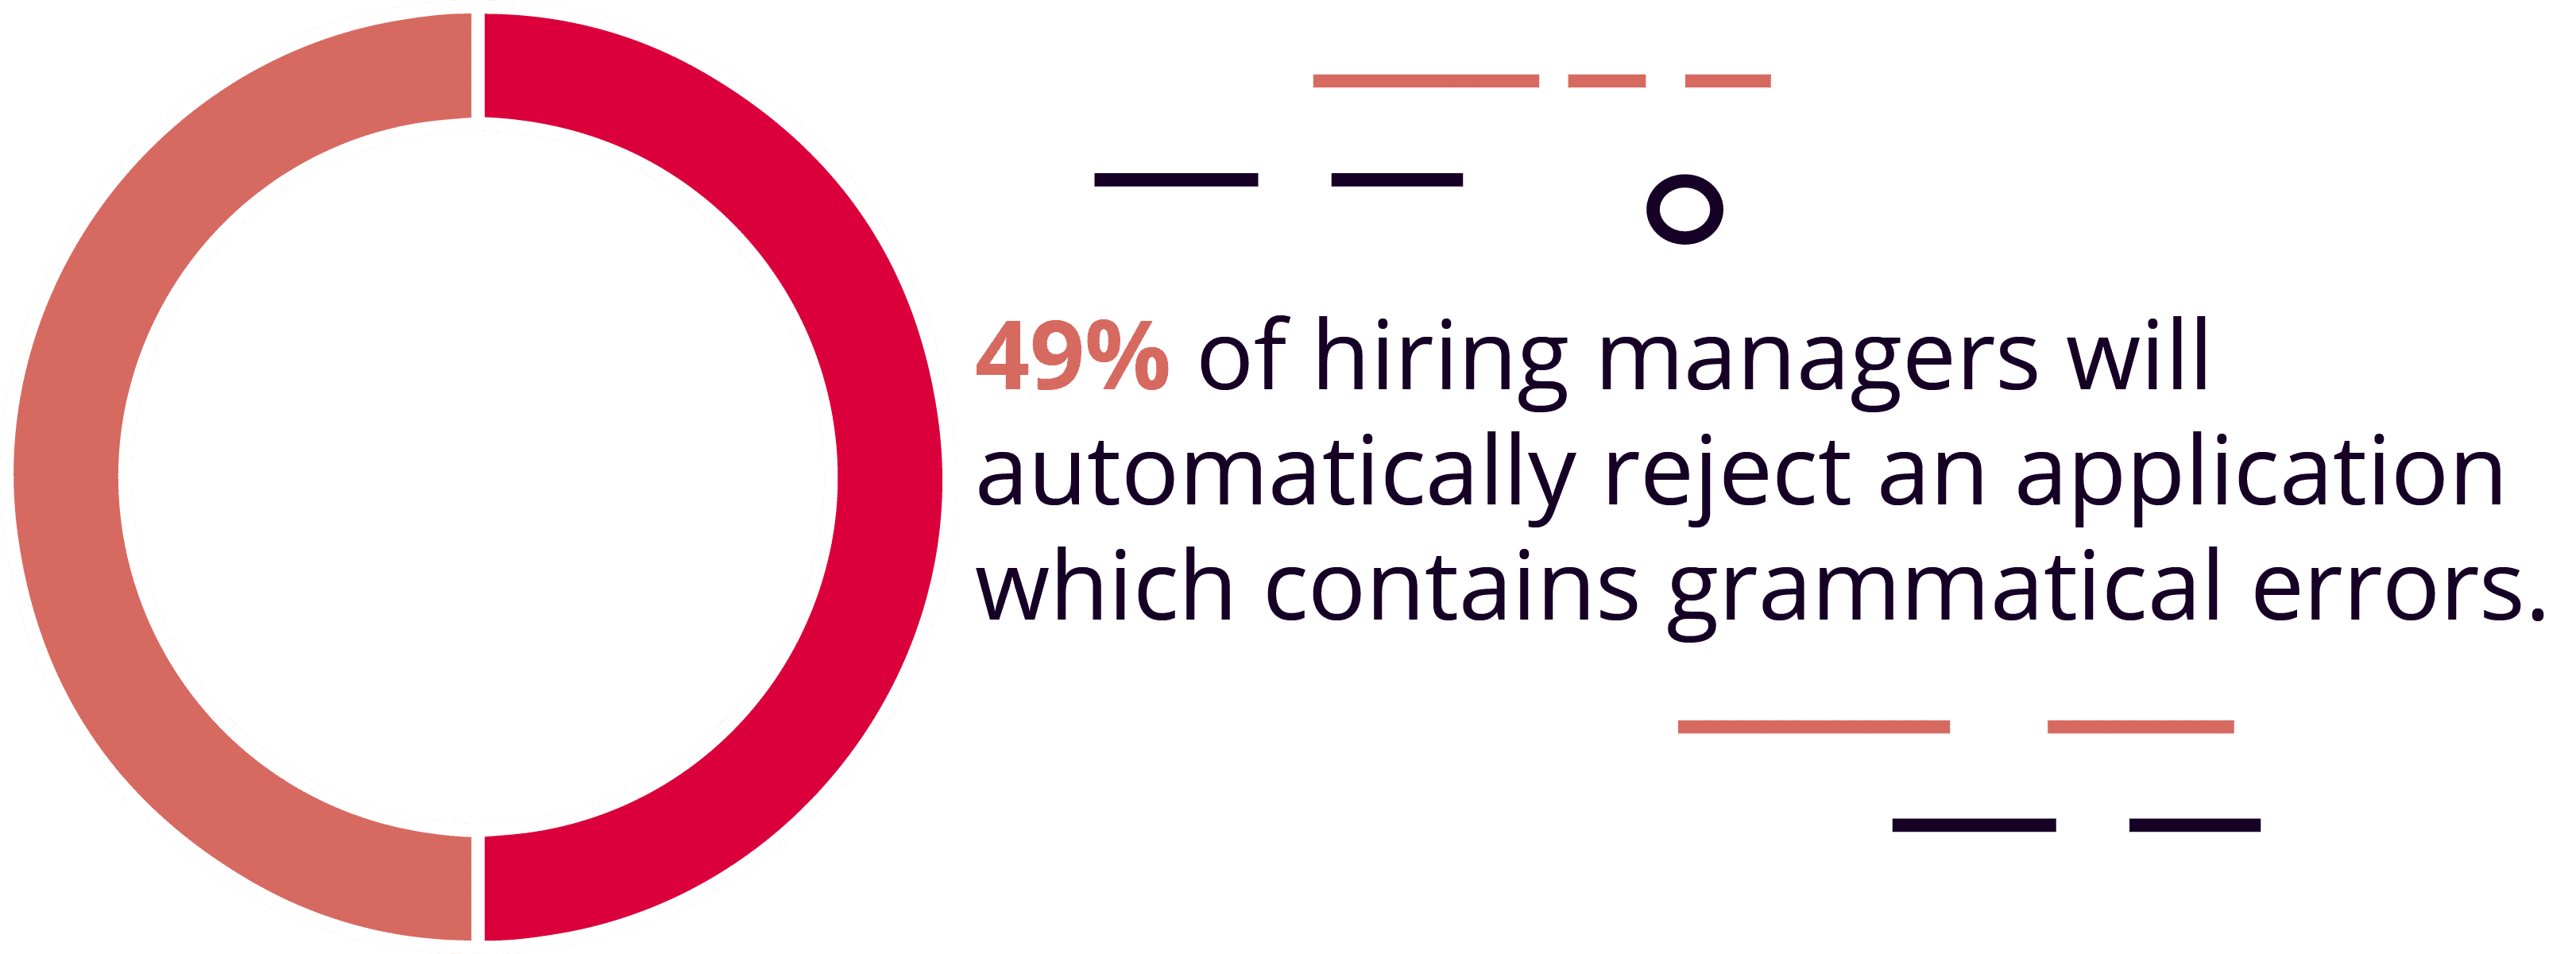 Half of Hiring Managers Said They Would Automatically Dismiss an Application If It Contained Spelling or Grammatical Errors